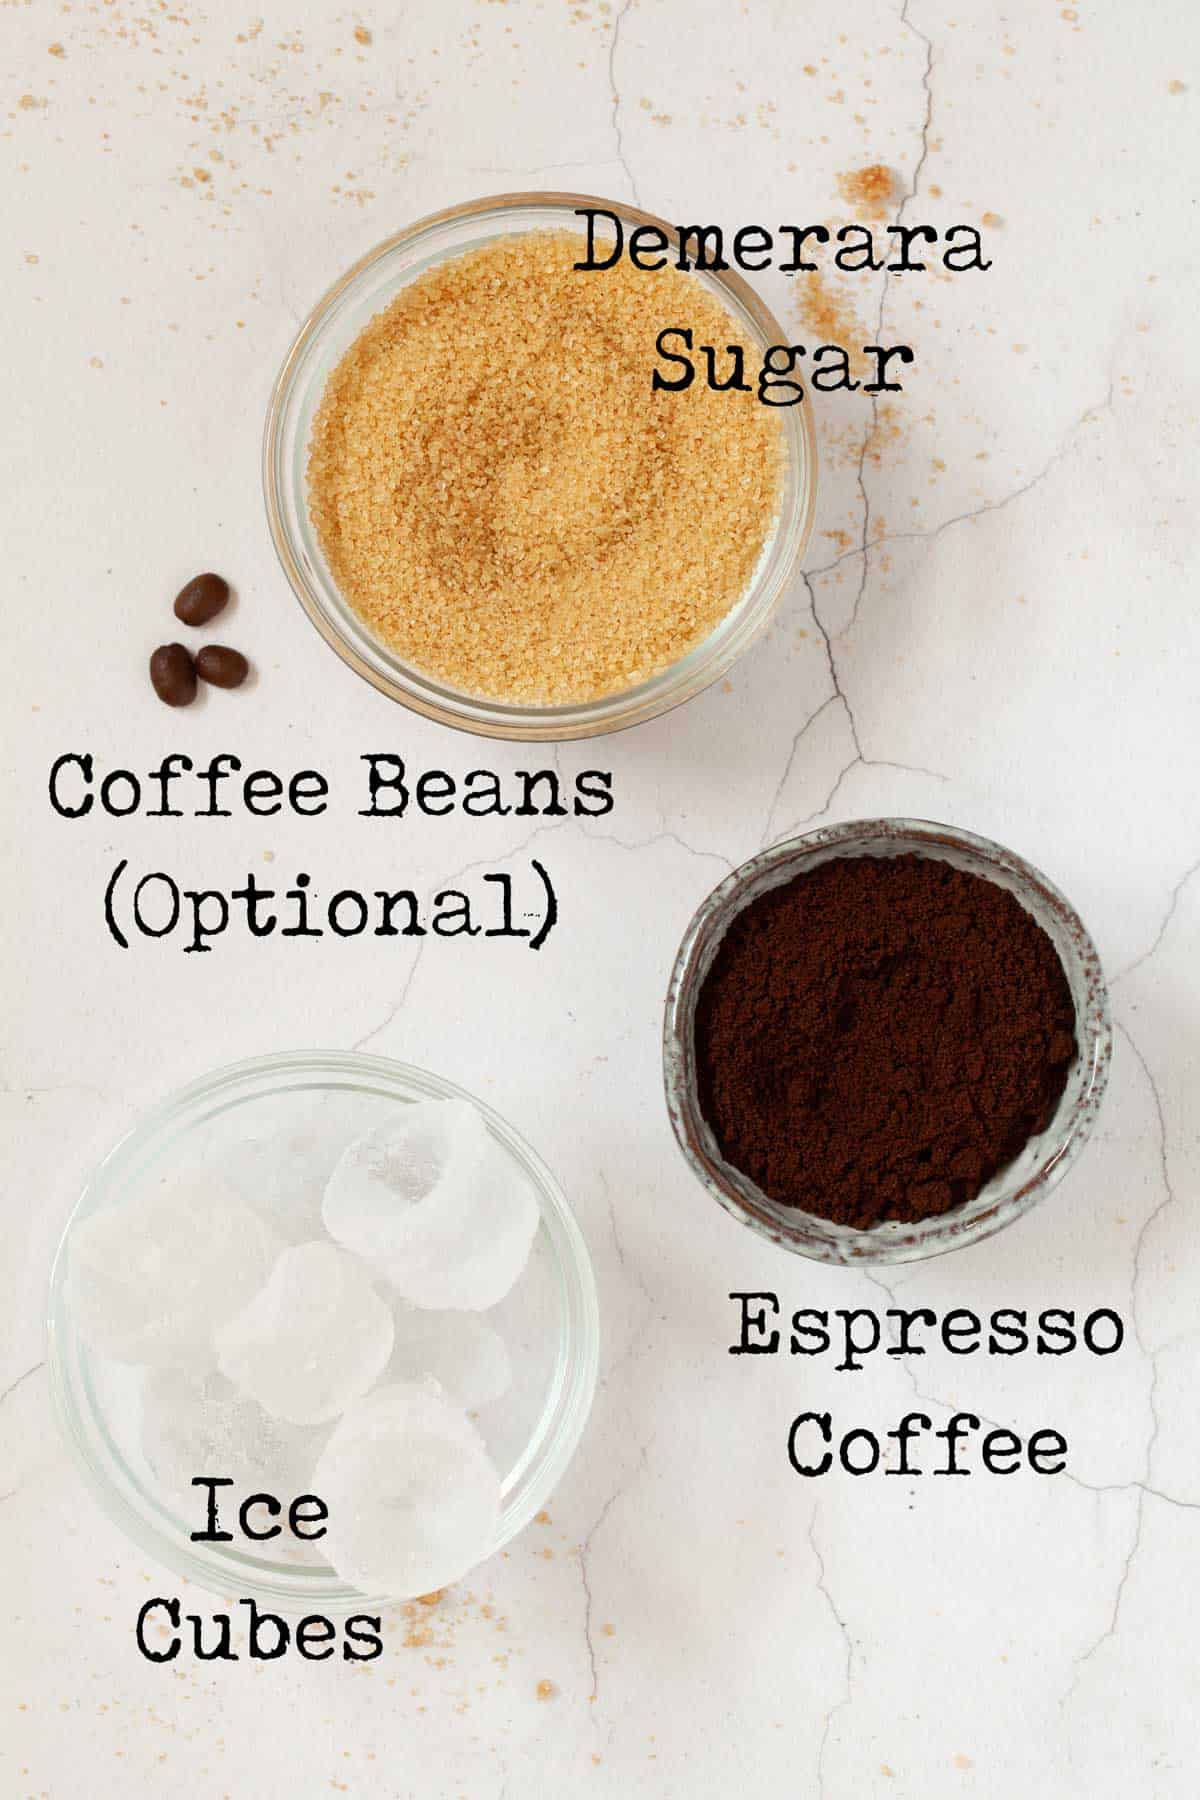 Ingredients for iced coffee: ground coffee, ice, sugar, coffee beans